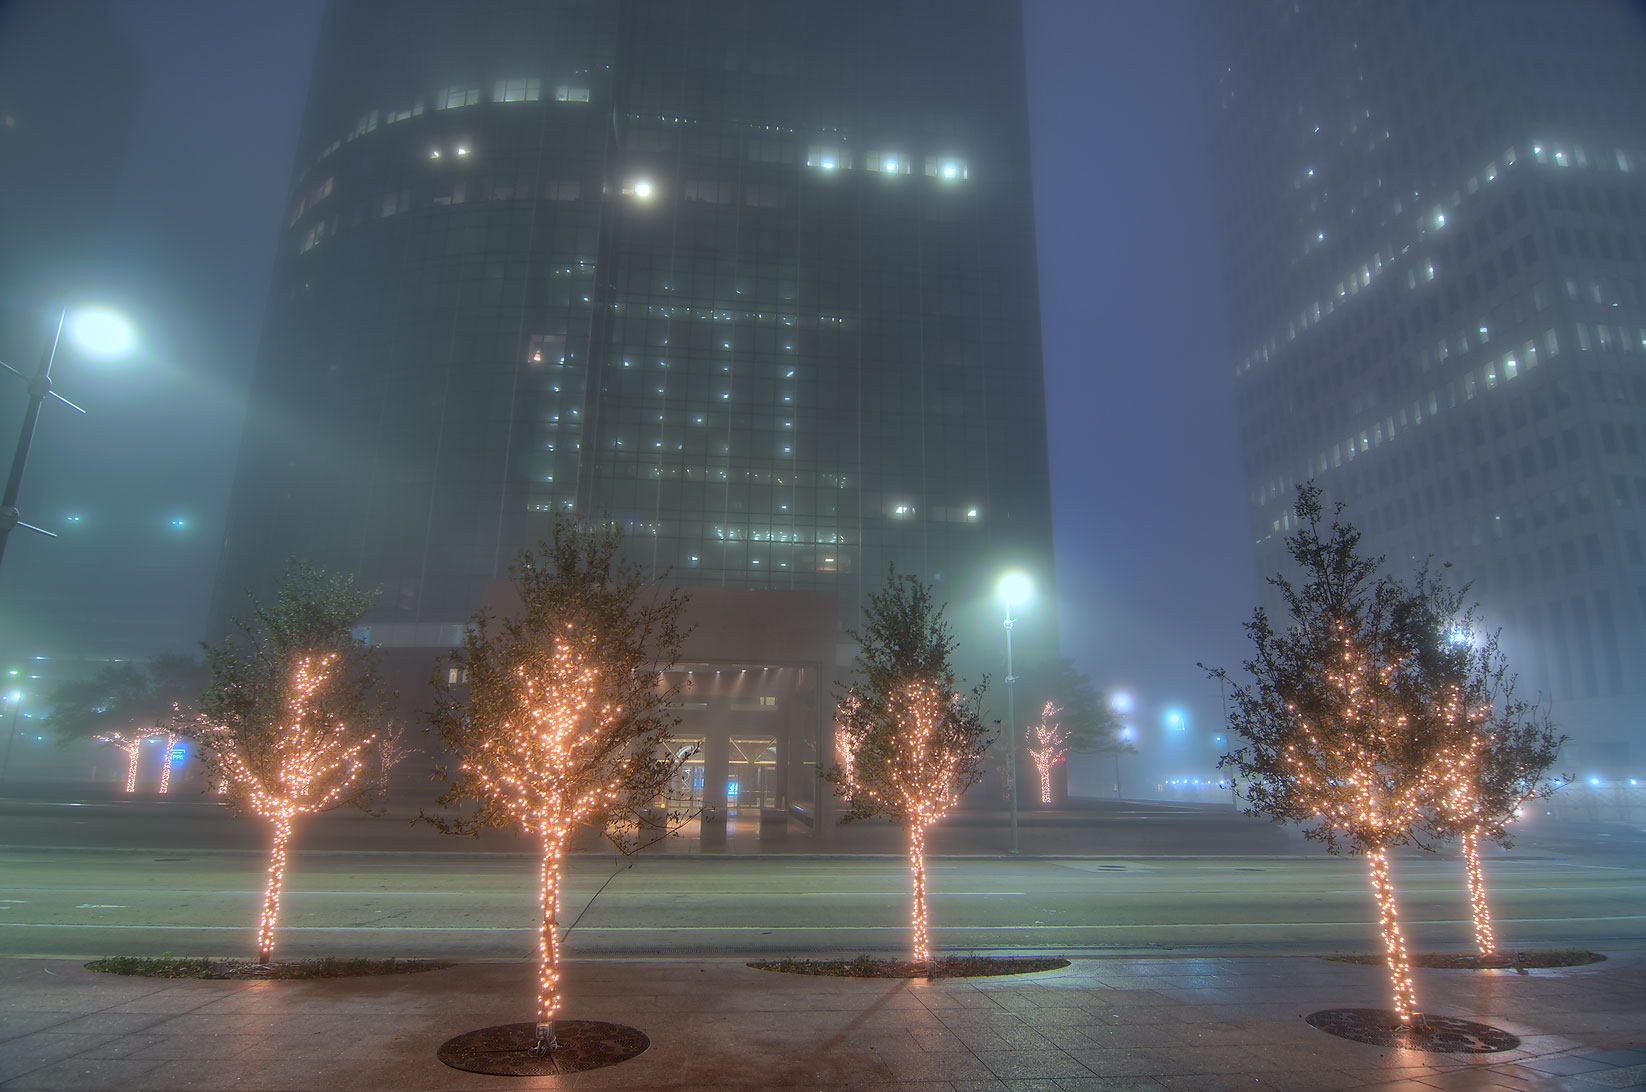 Christmas trees in downtown in fog at morning dusk. Houston, Texas